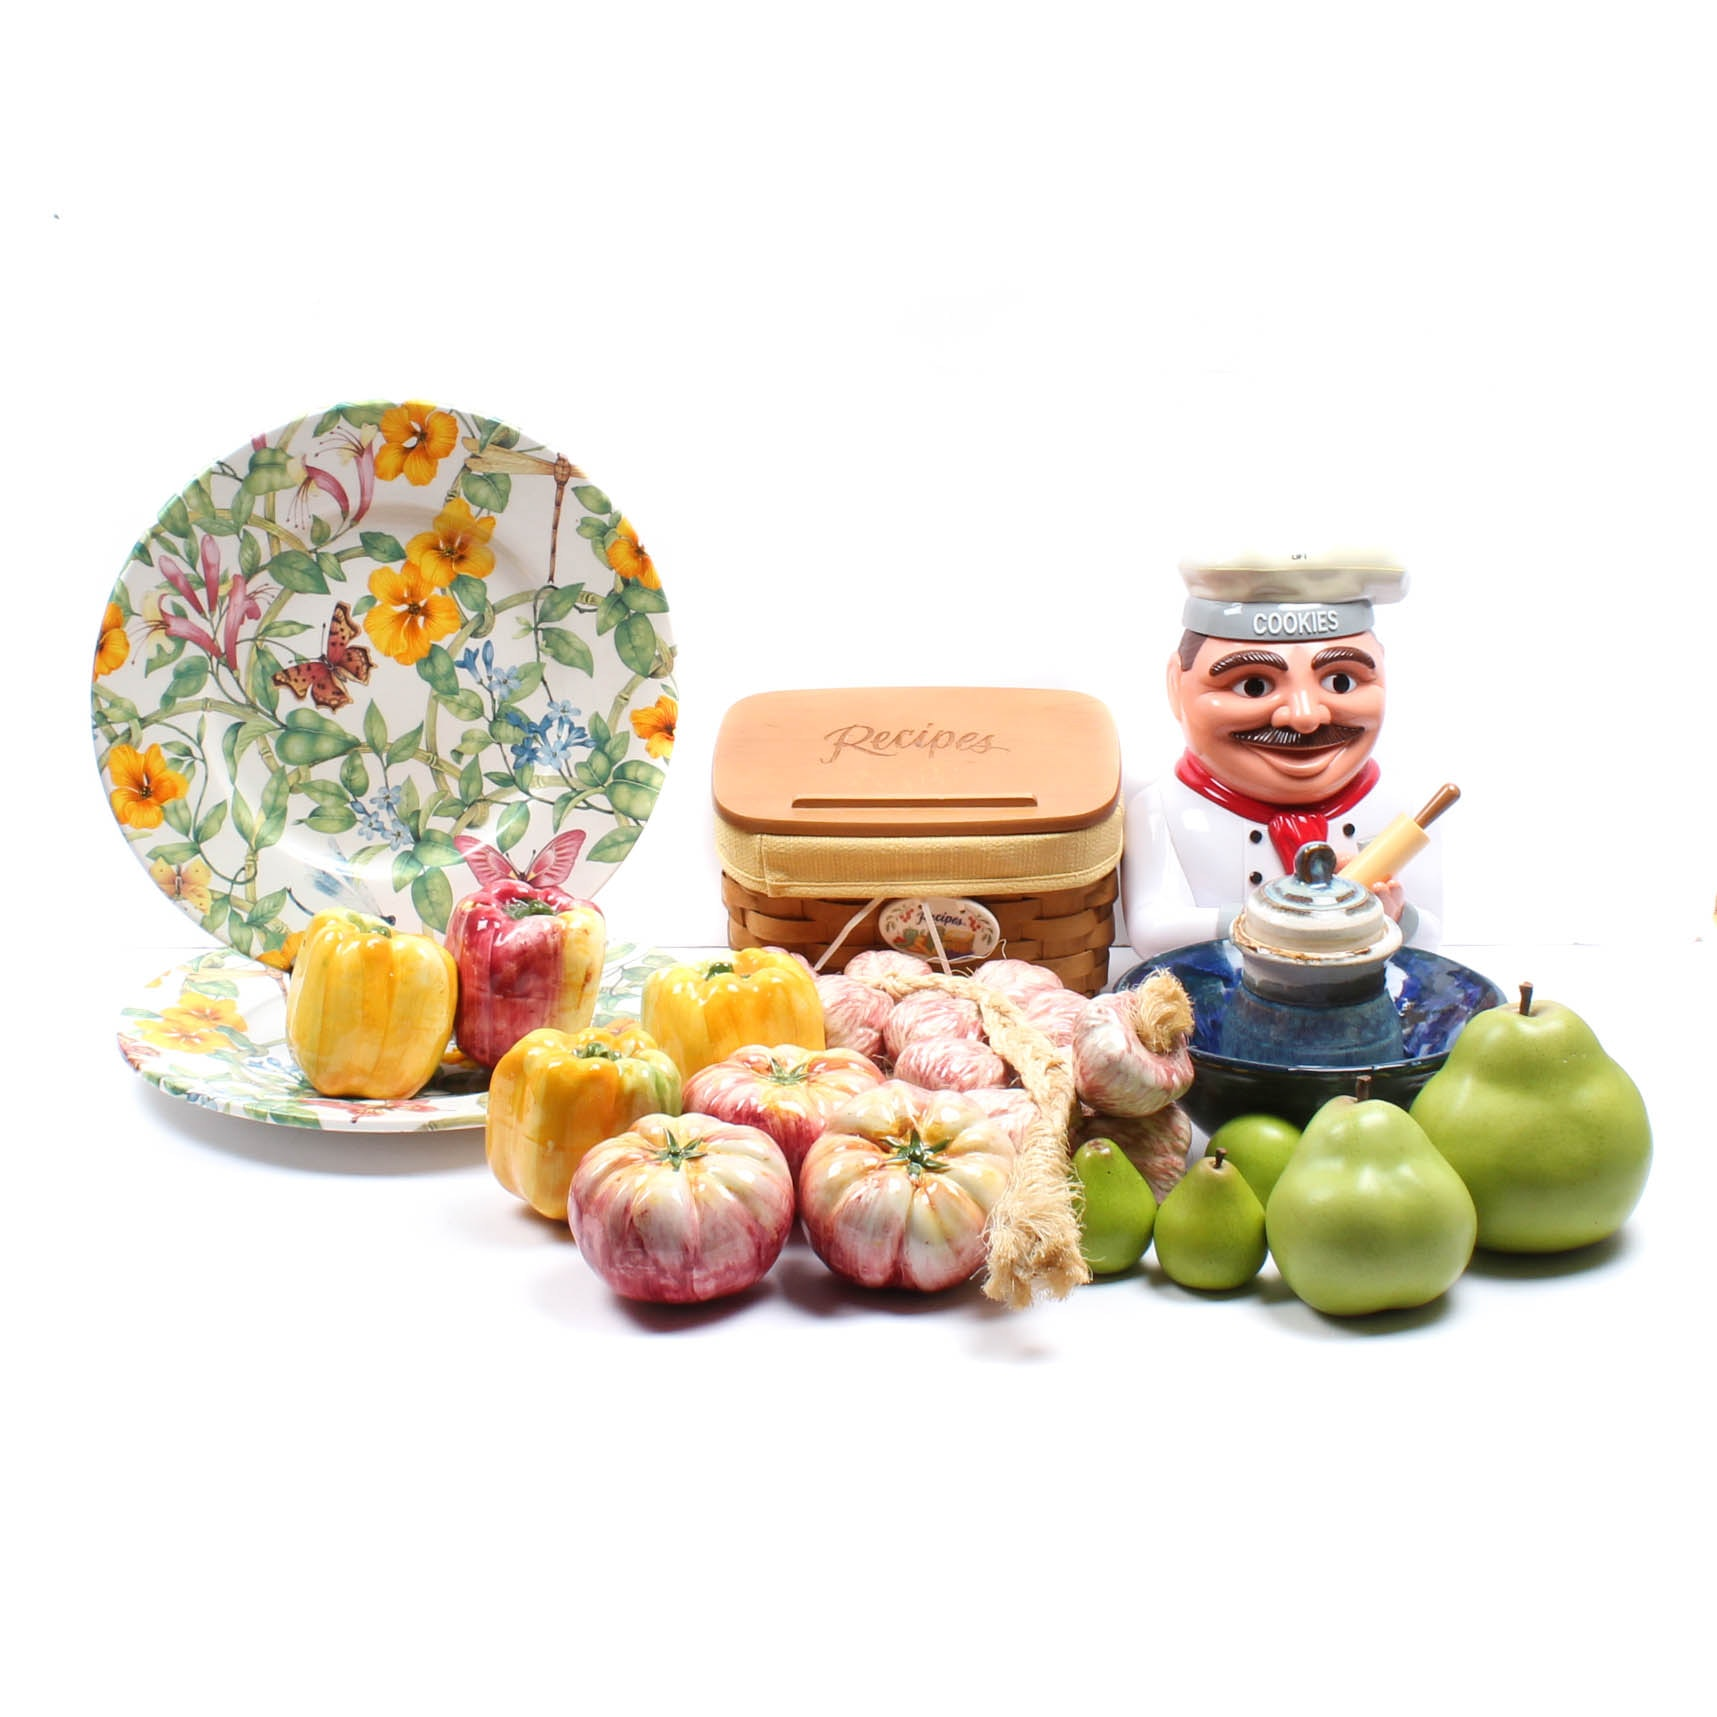 Cookie Jar, Plates, Longaberger  and More